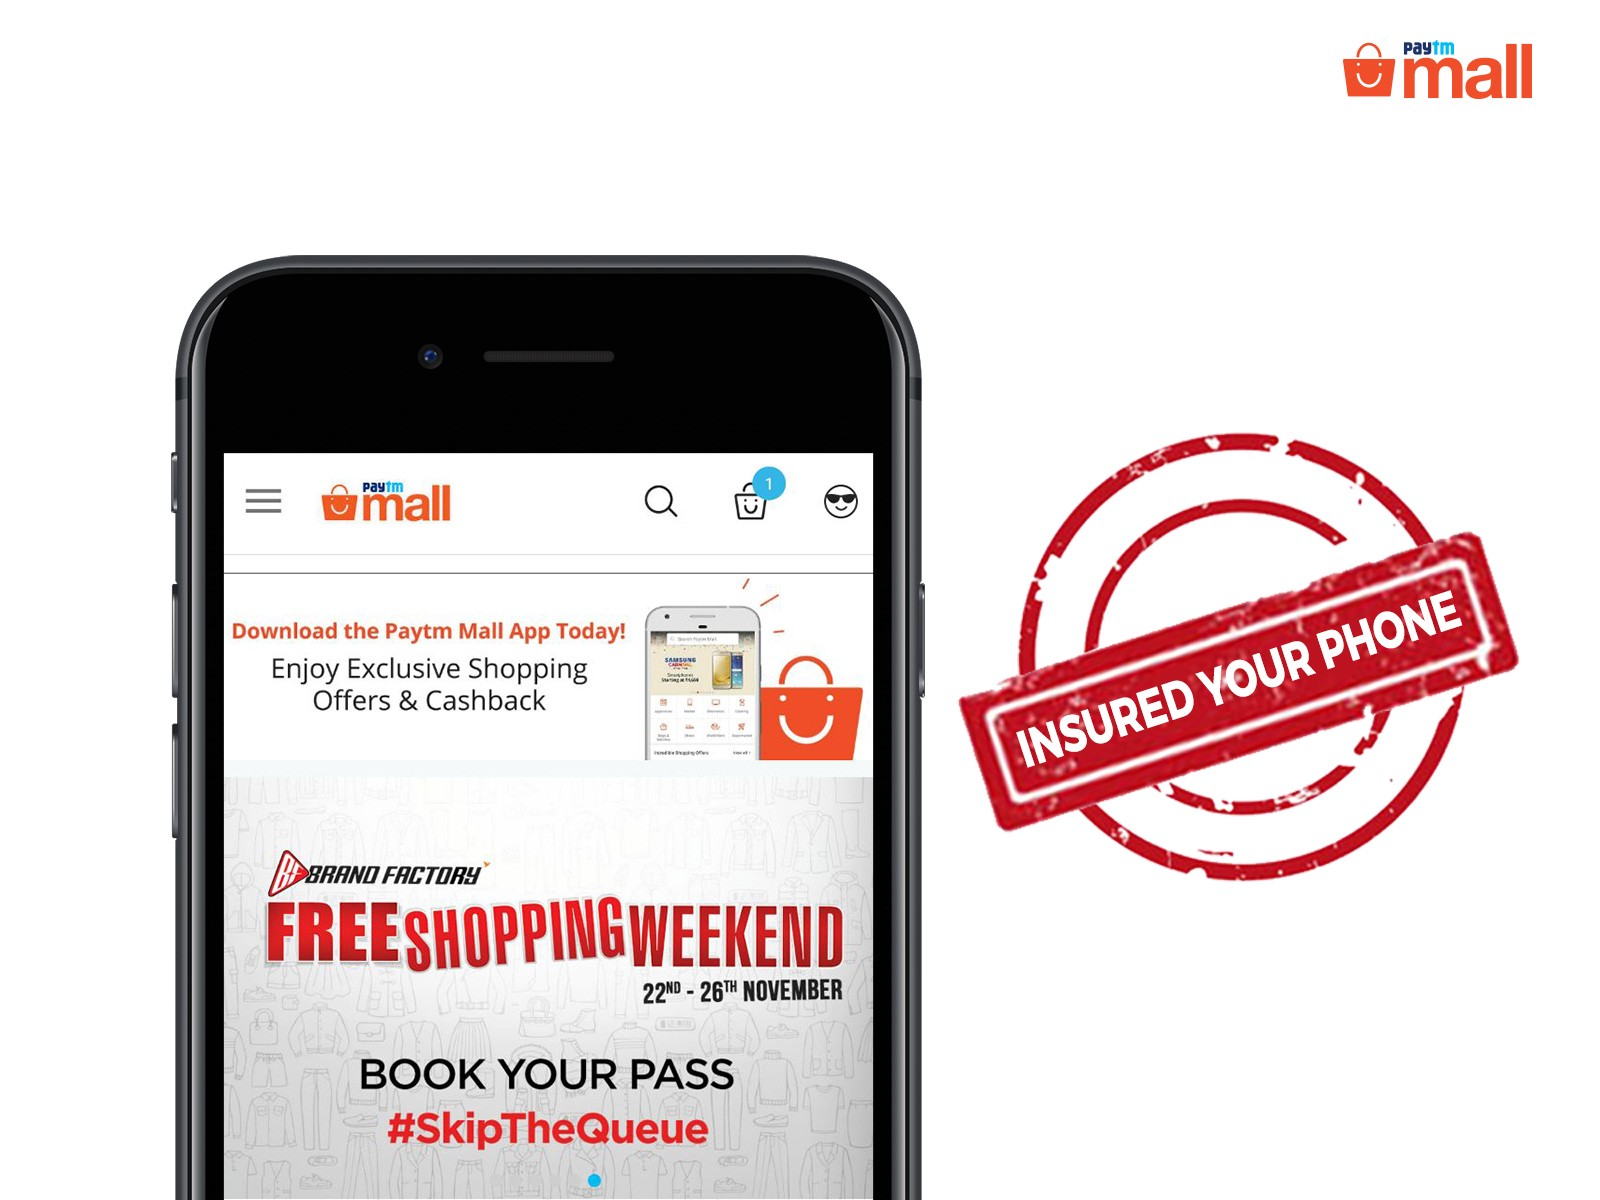 Safeguard your smartphone purchase with 'Mobile Protection Plan'